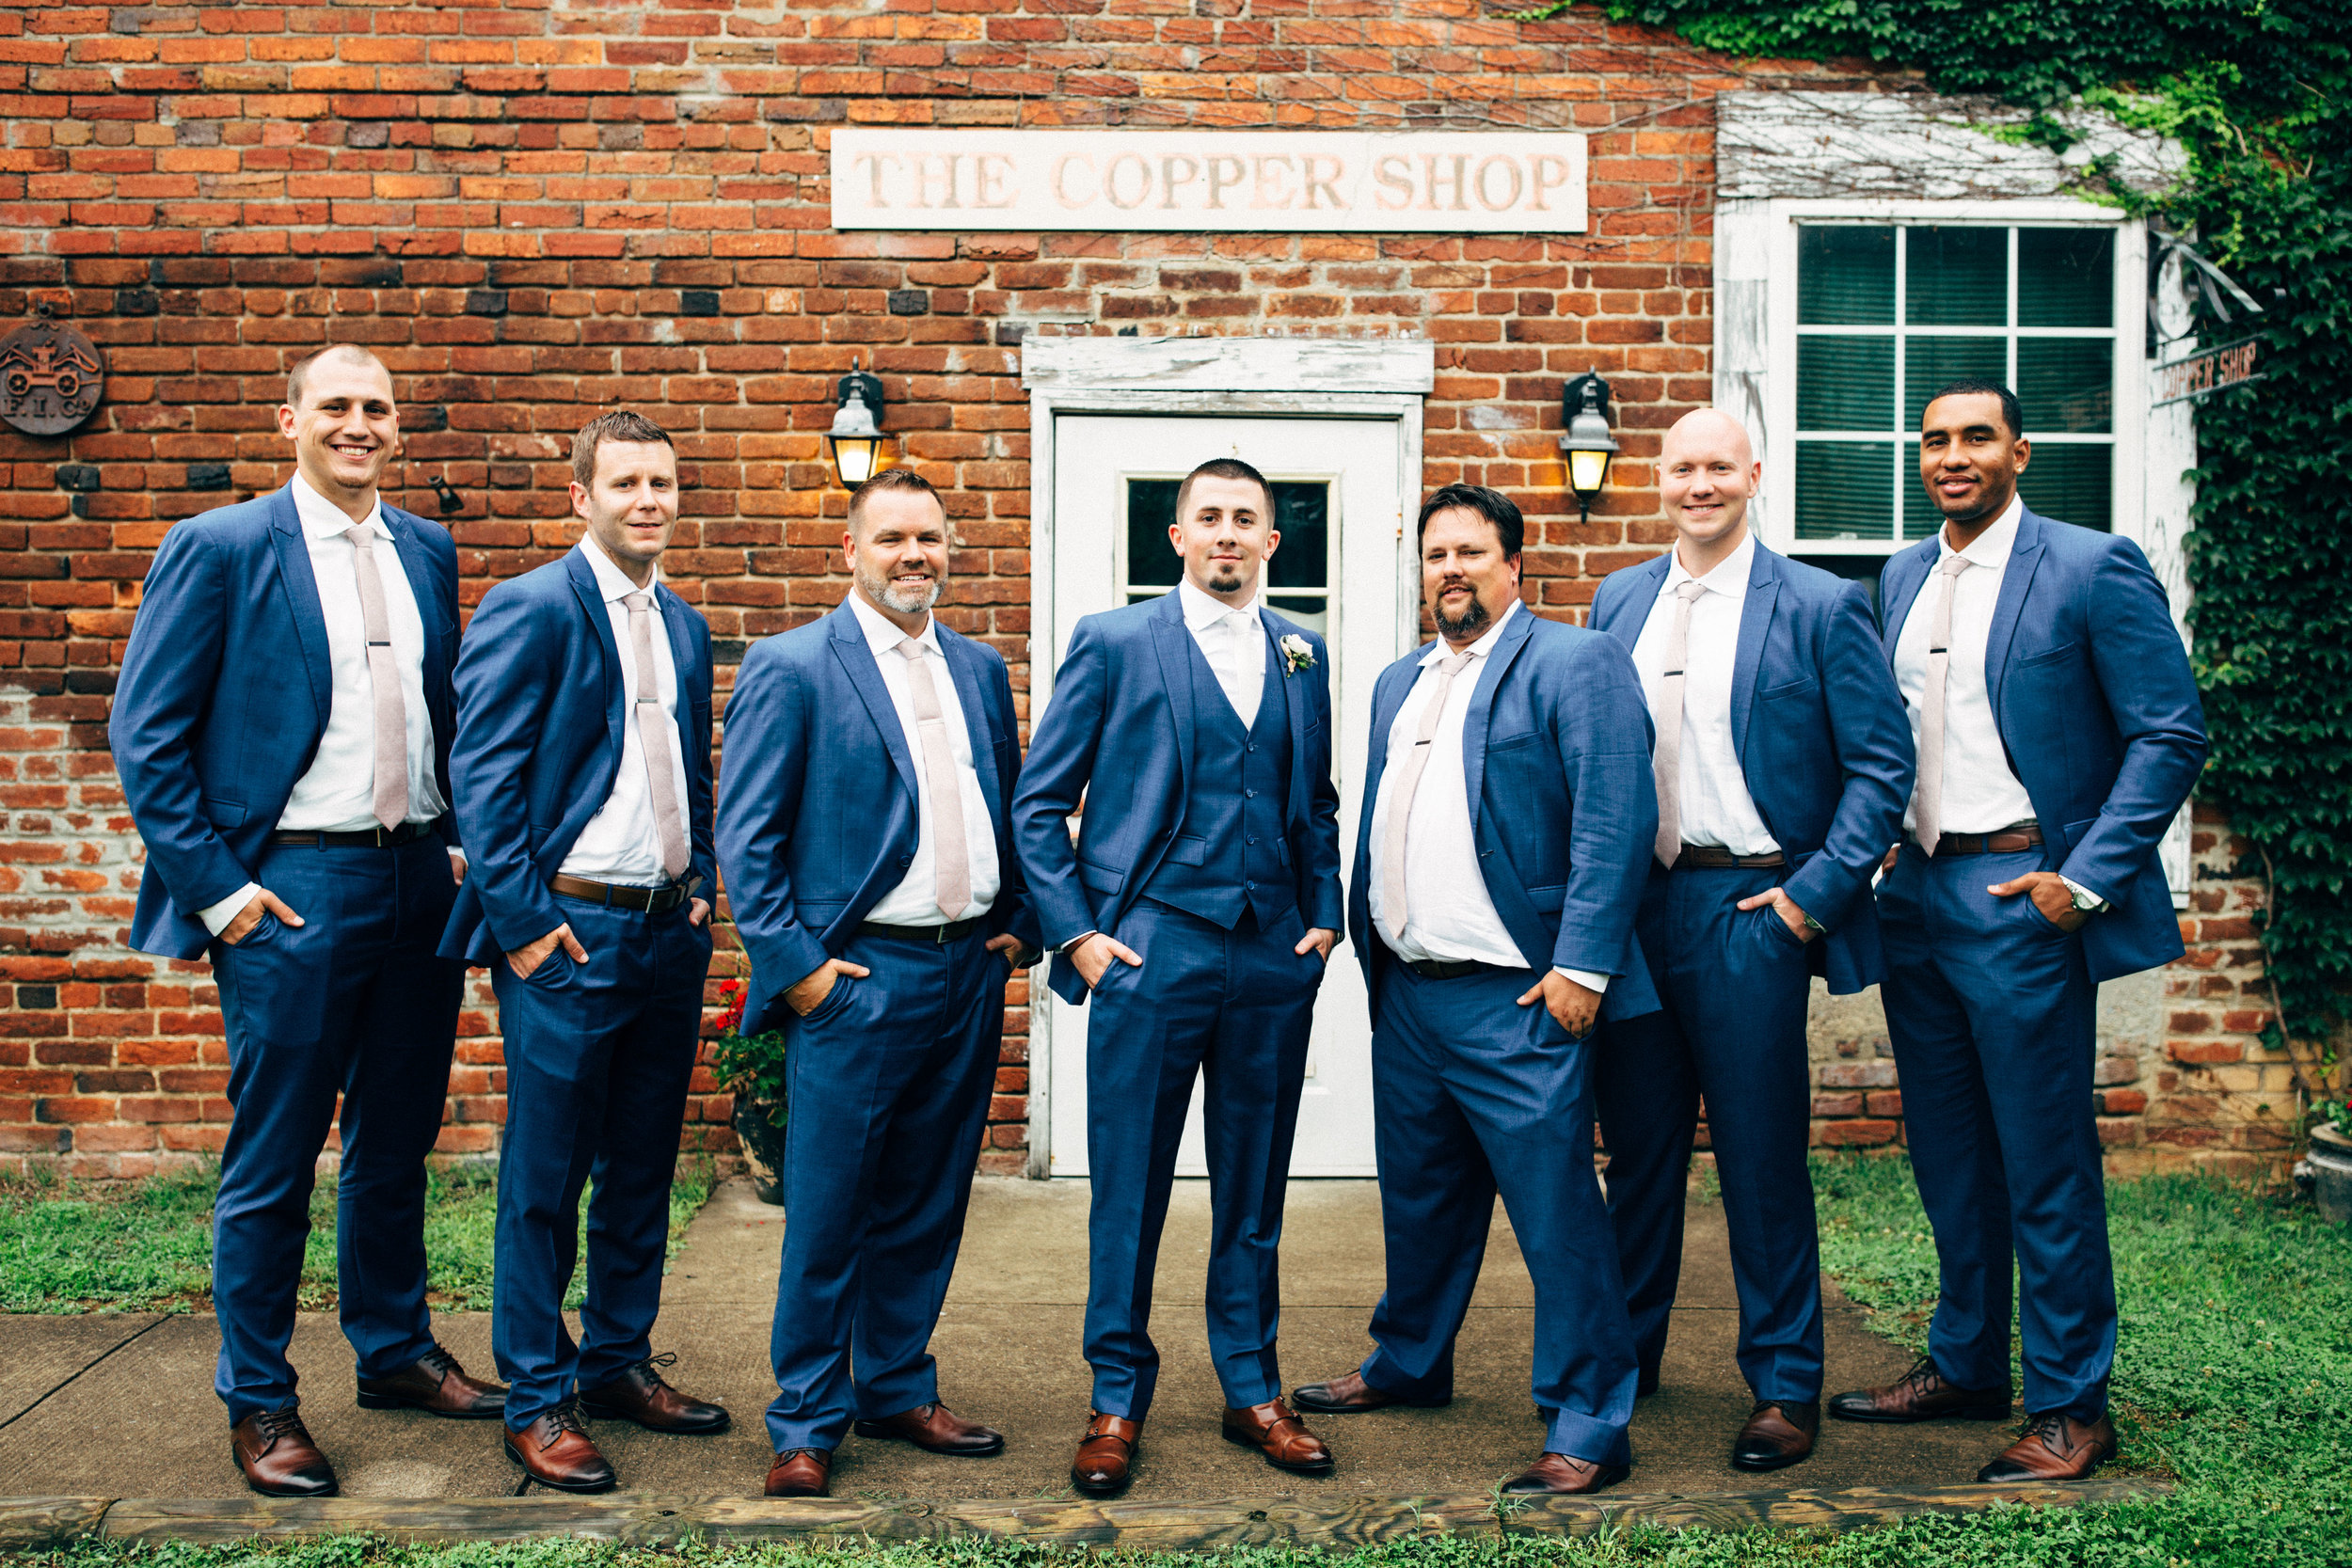 groom with his groomsmen posing in front of brick builing